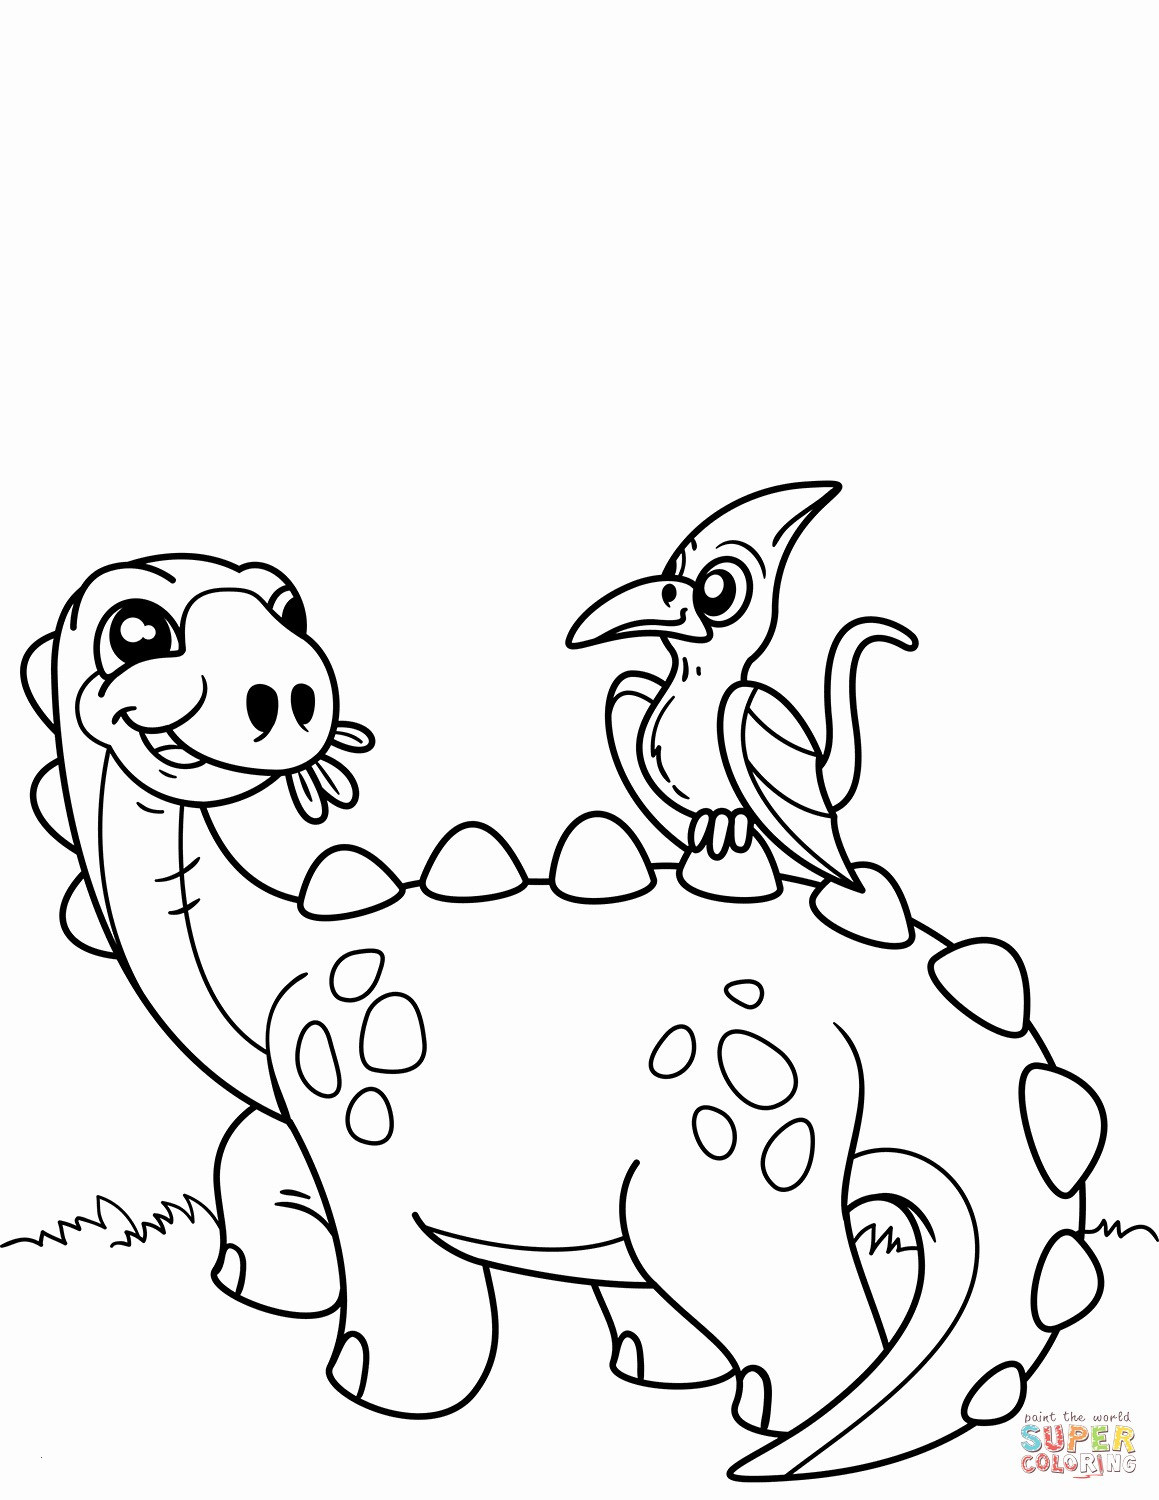 Printable Christmas Dinosaur Coloring Pages With Free Fresh